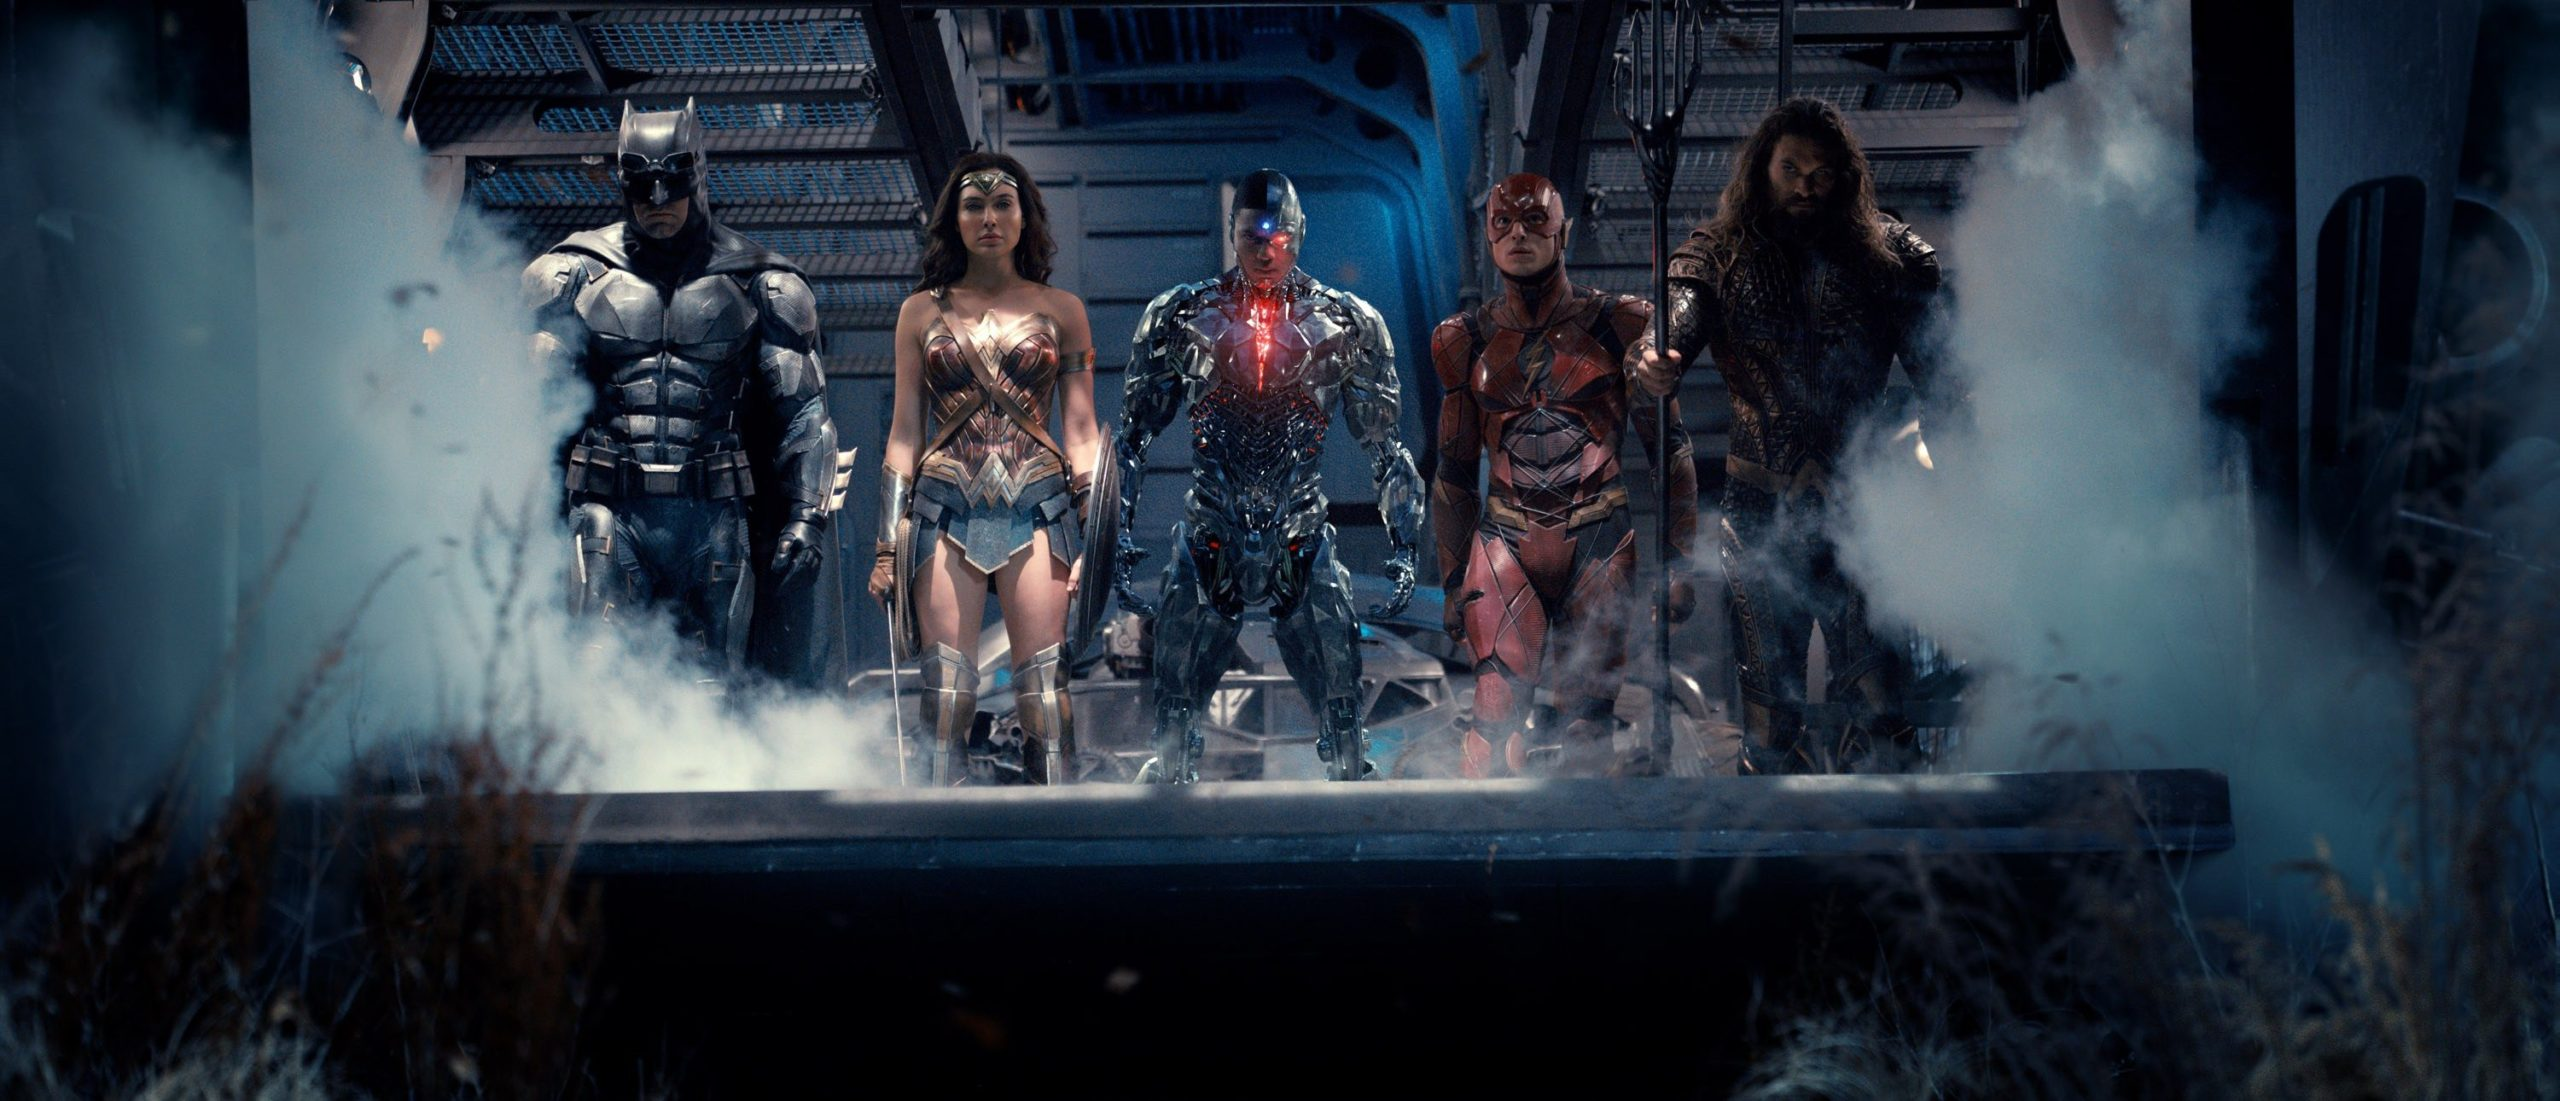 Explore The Team's Dynamic In AT&T's Exclusive Justice League's Promo Video